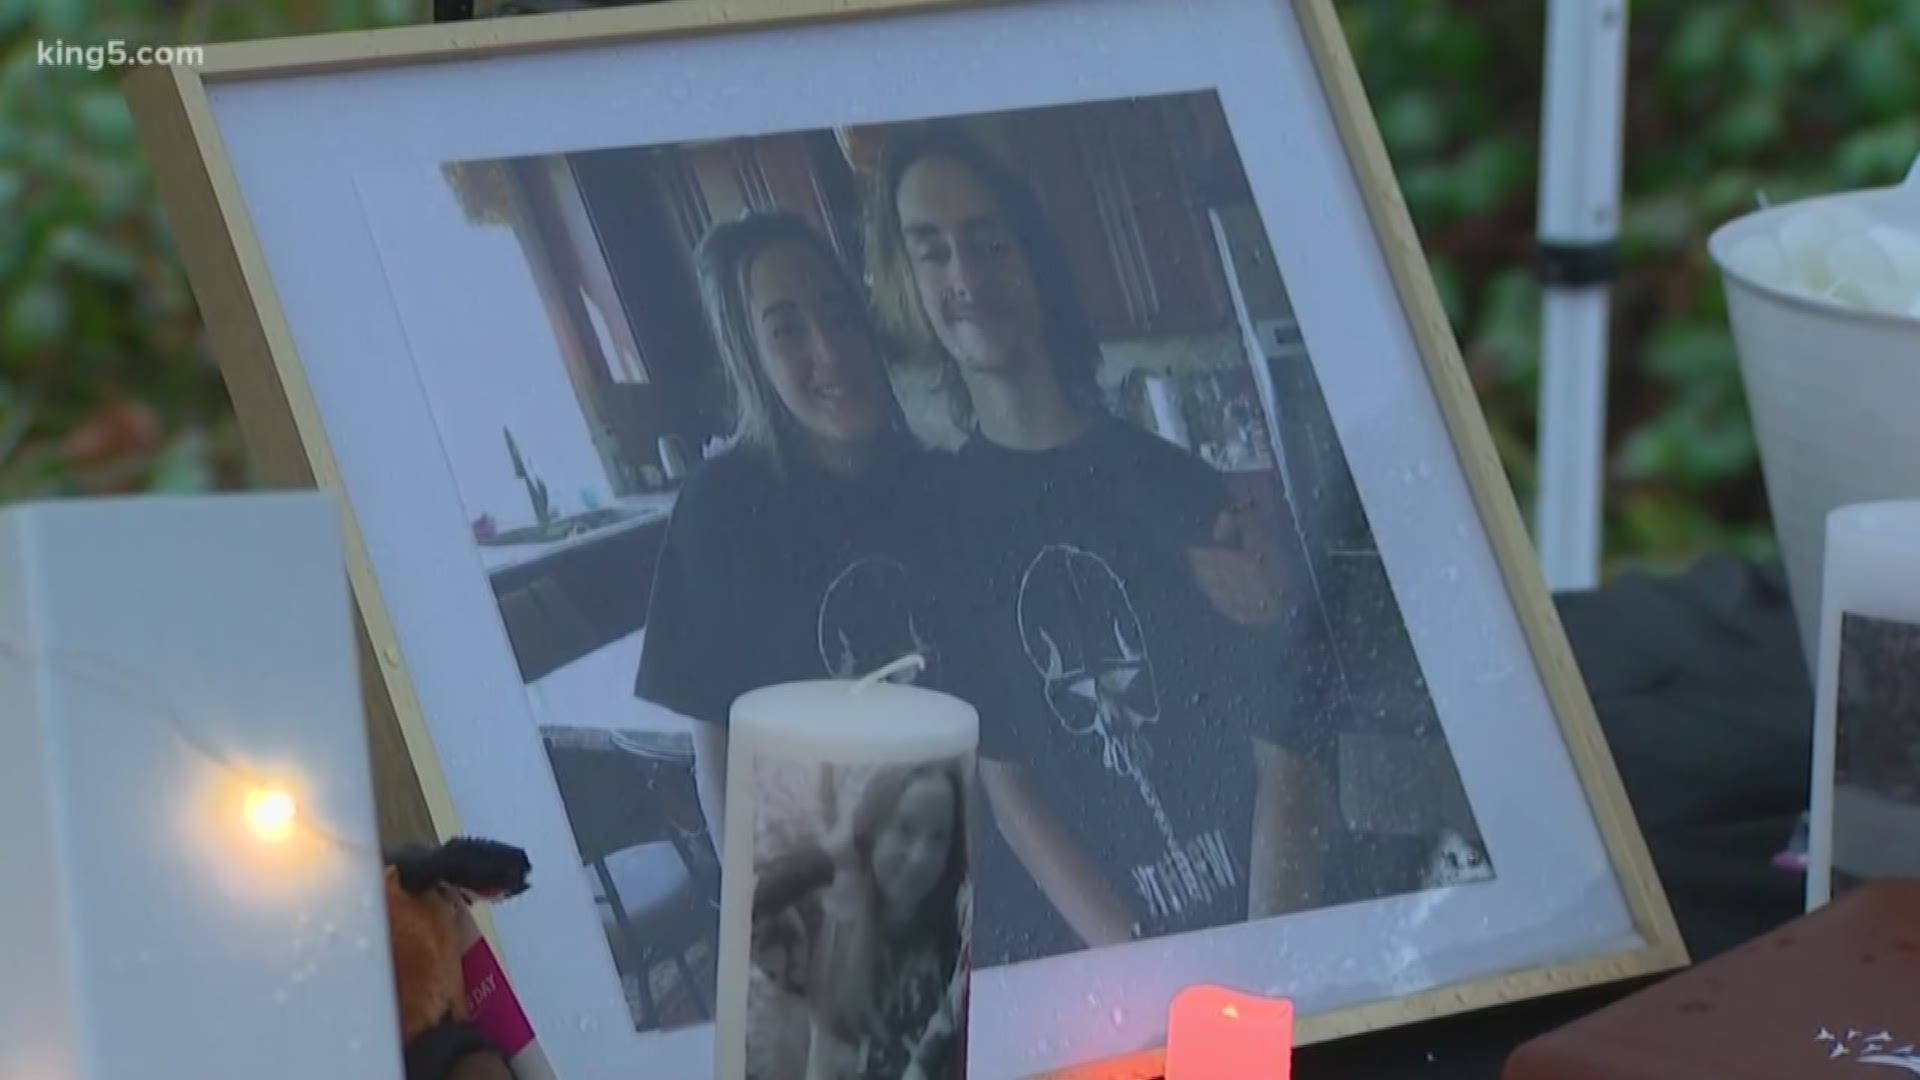 Migrant teen found dead, others hurt but rescued in Culberson & Hudspeth counties 6